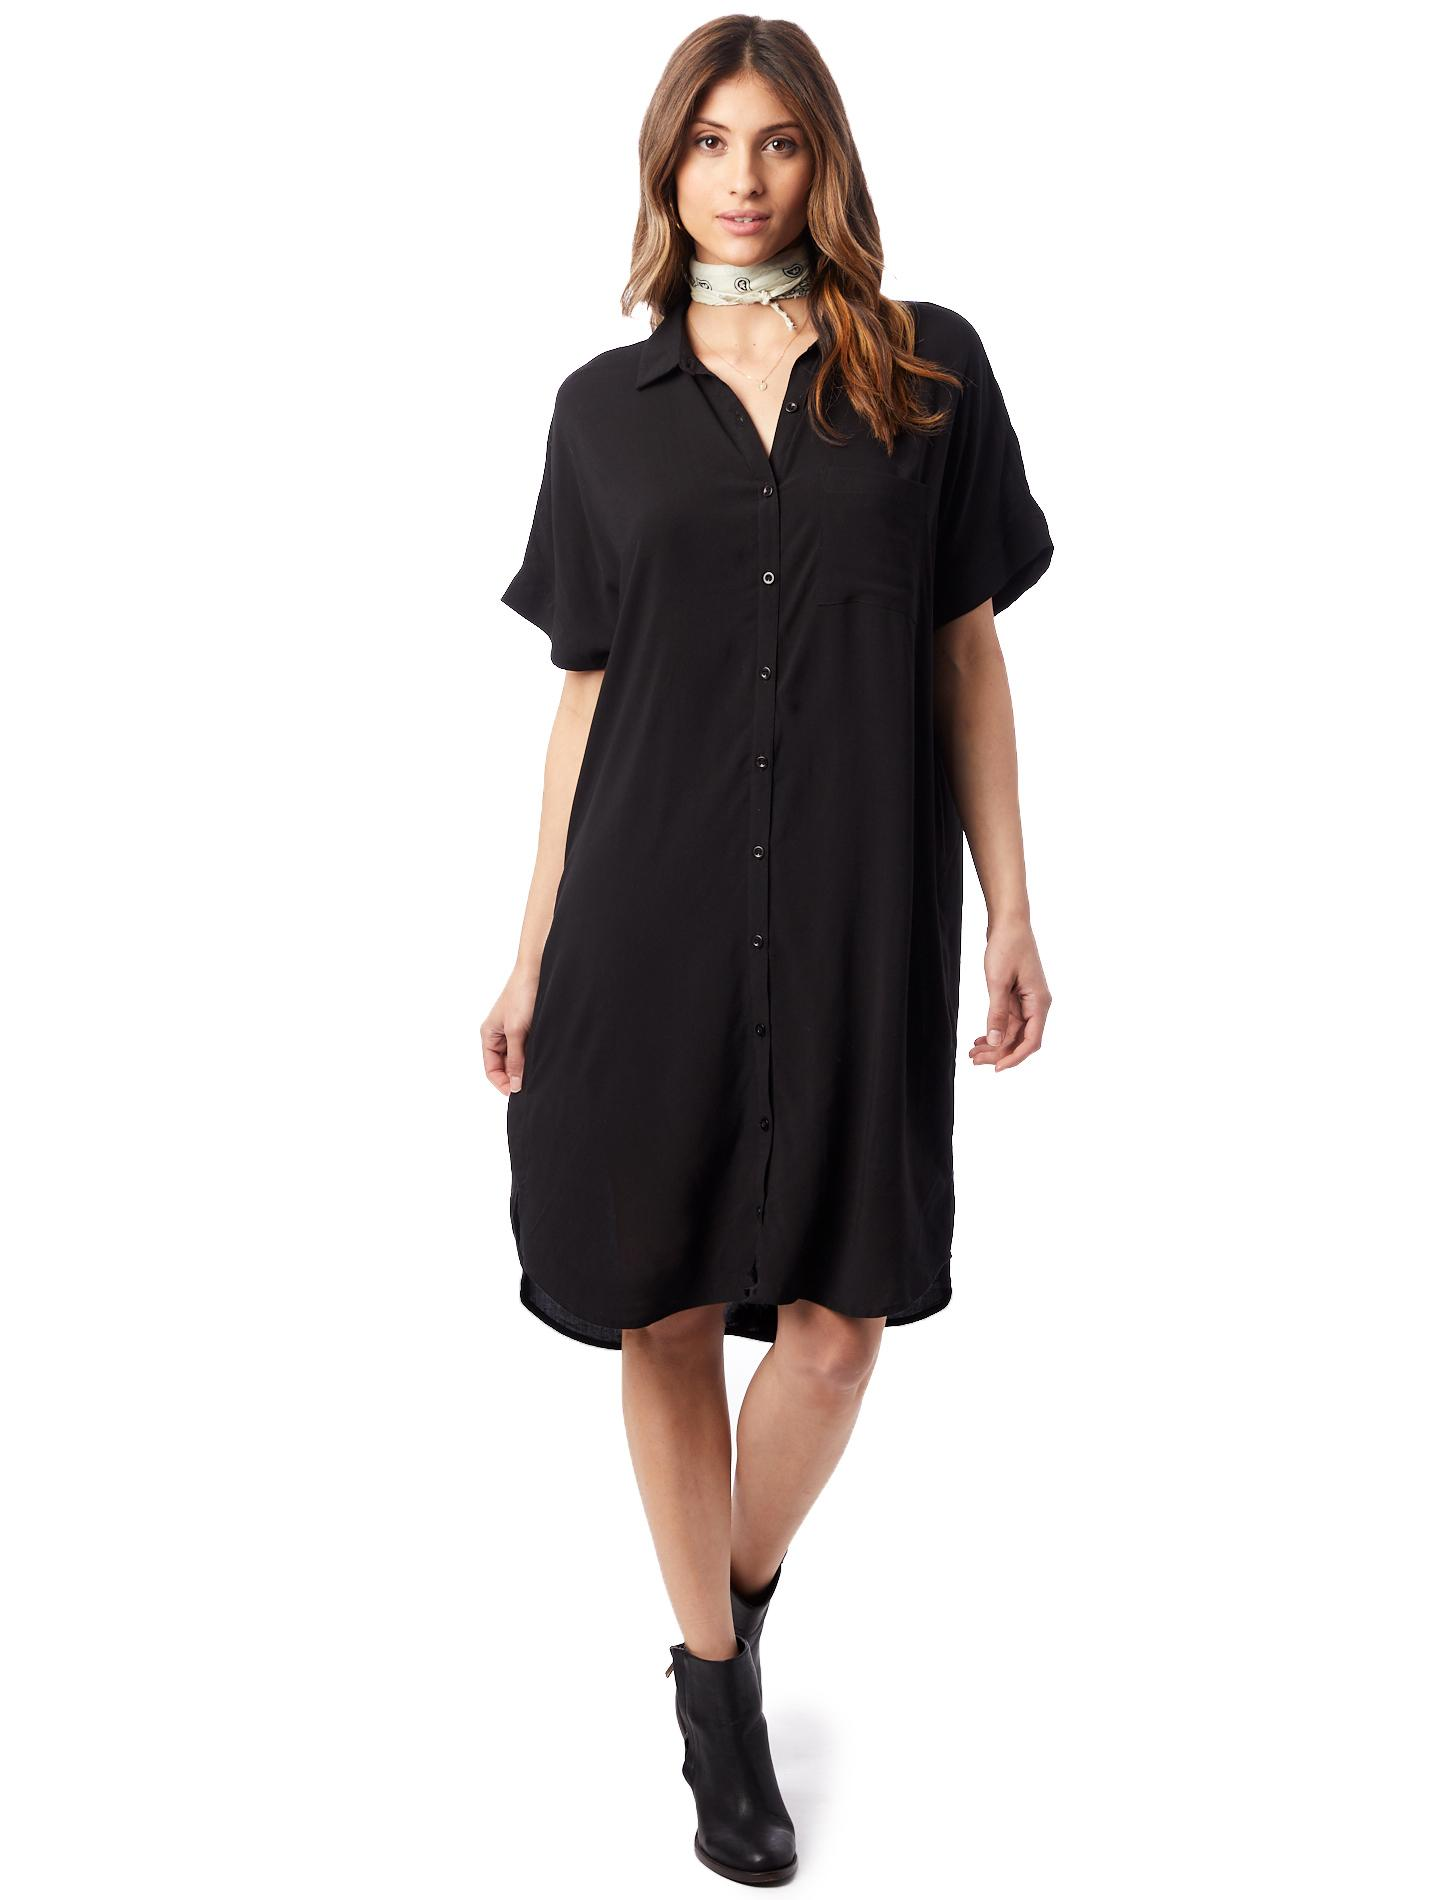 2bdcc5beafbfe Lyst - Alternative Apparel Rayon Challis Button Down Dress in Black